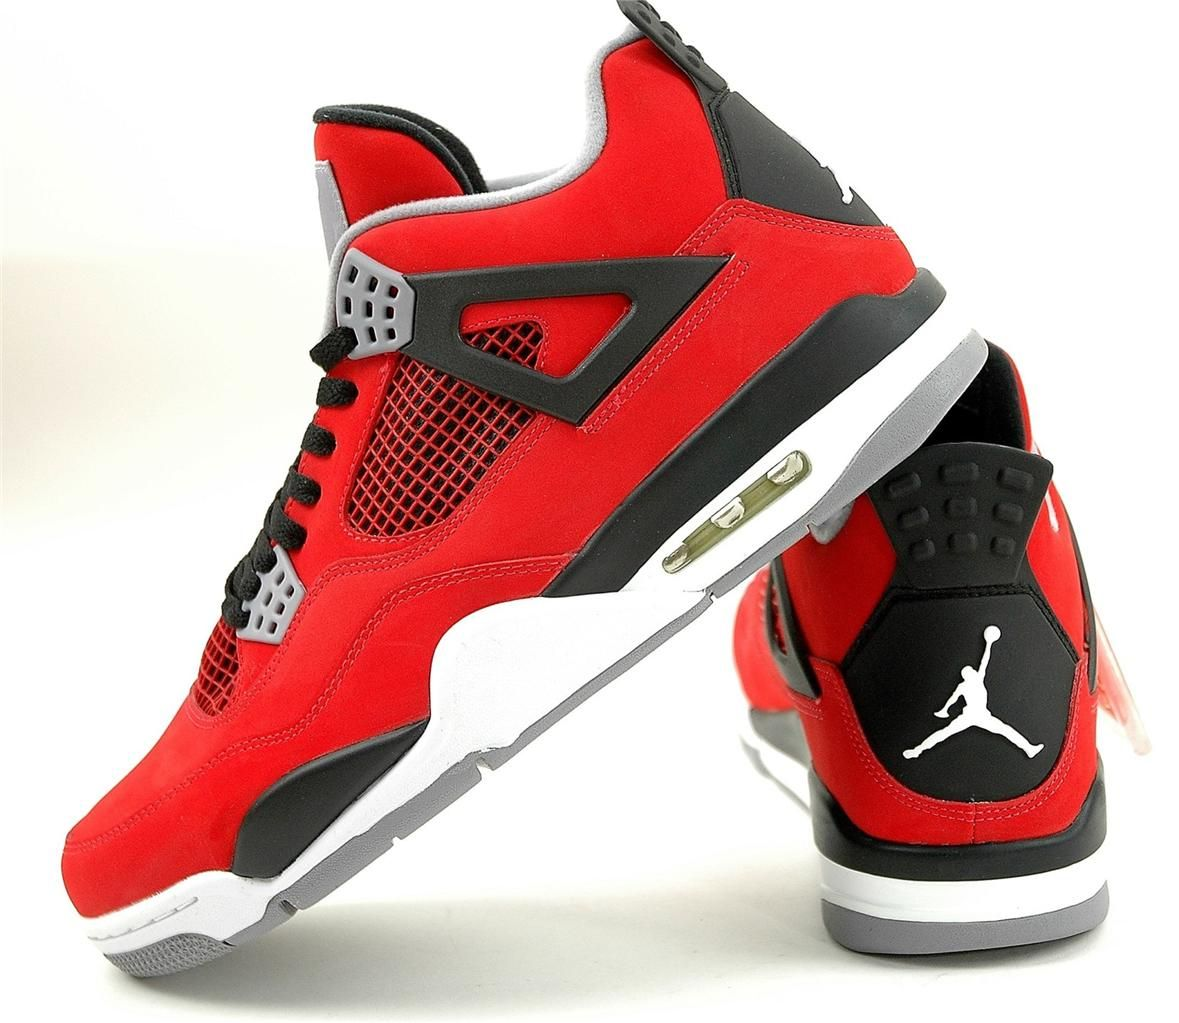 Nike air jordan 4 retro iv toro bravo fire red